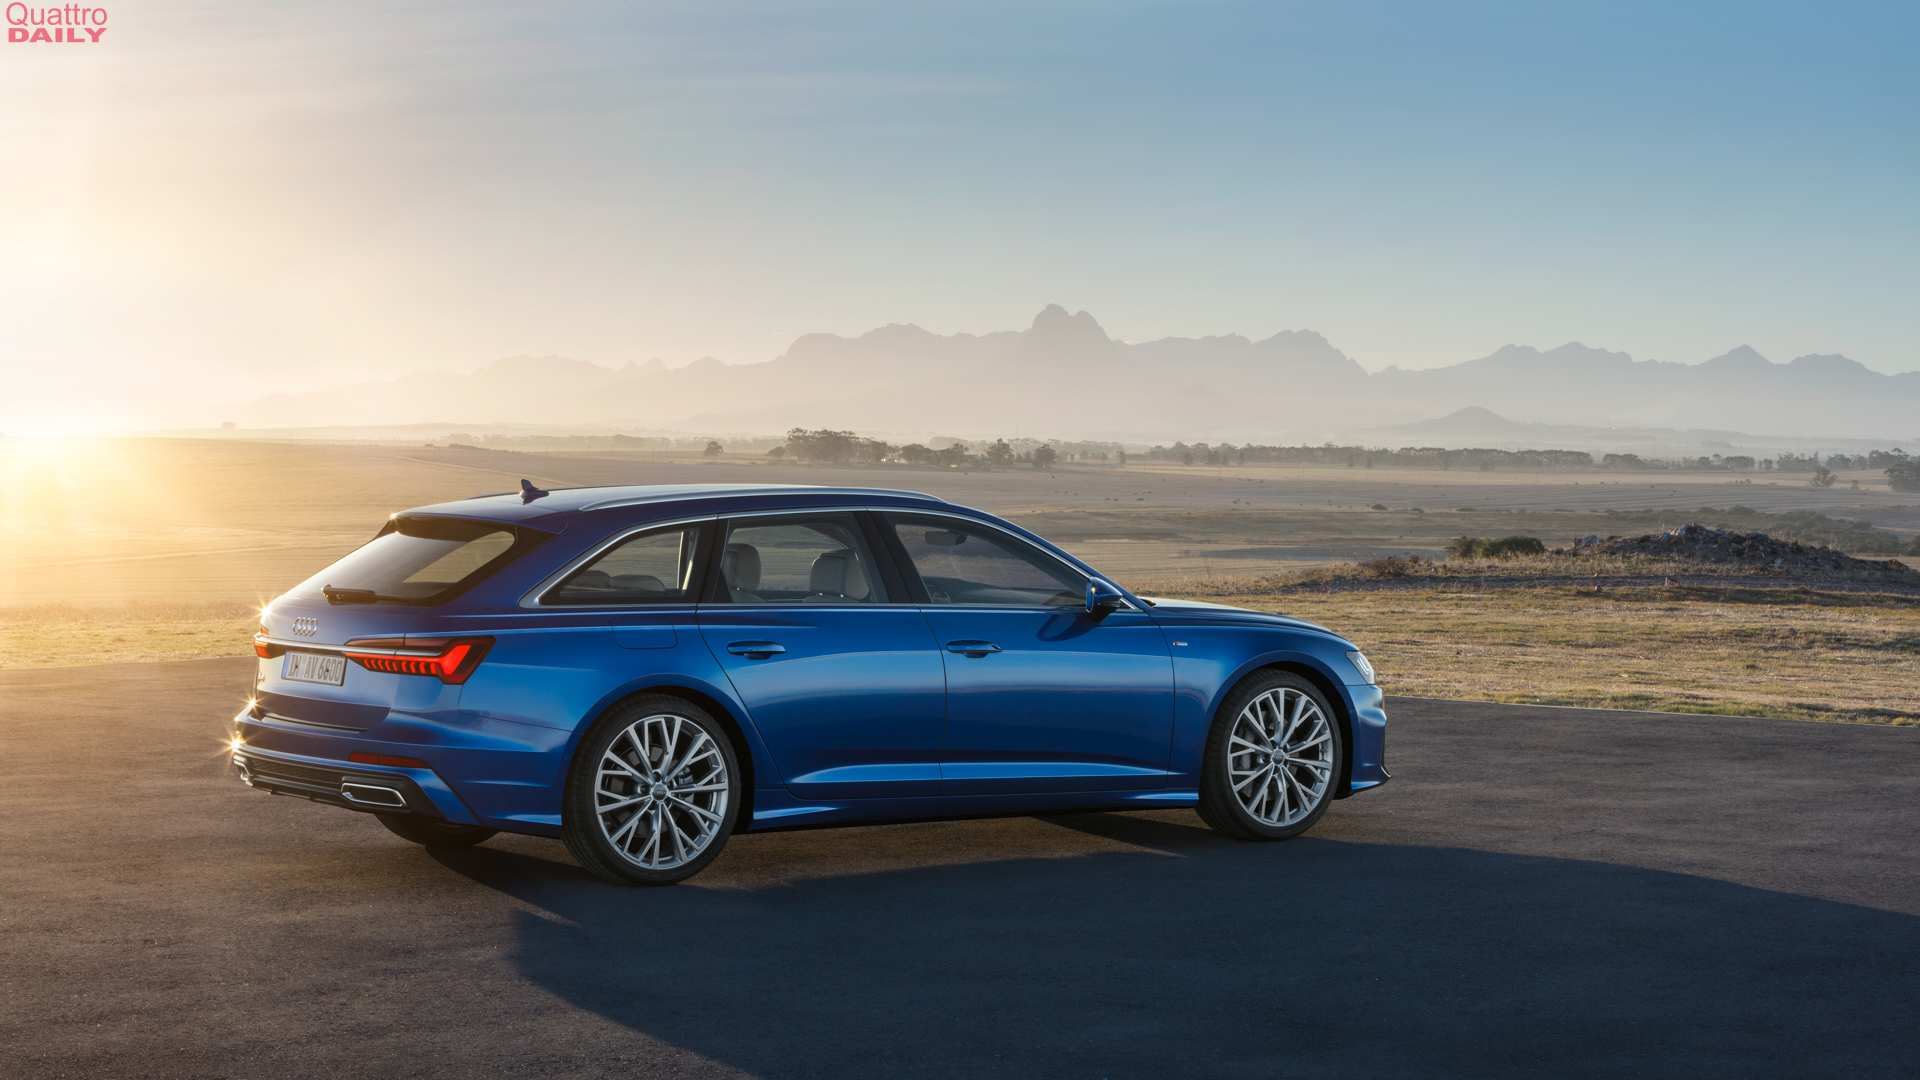 97 The Best 2020 Audi A6 Pictures